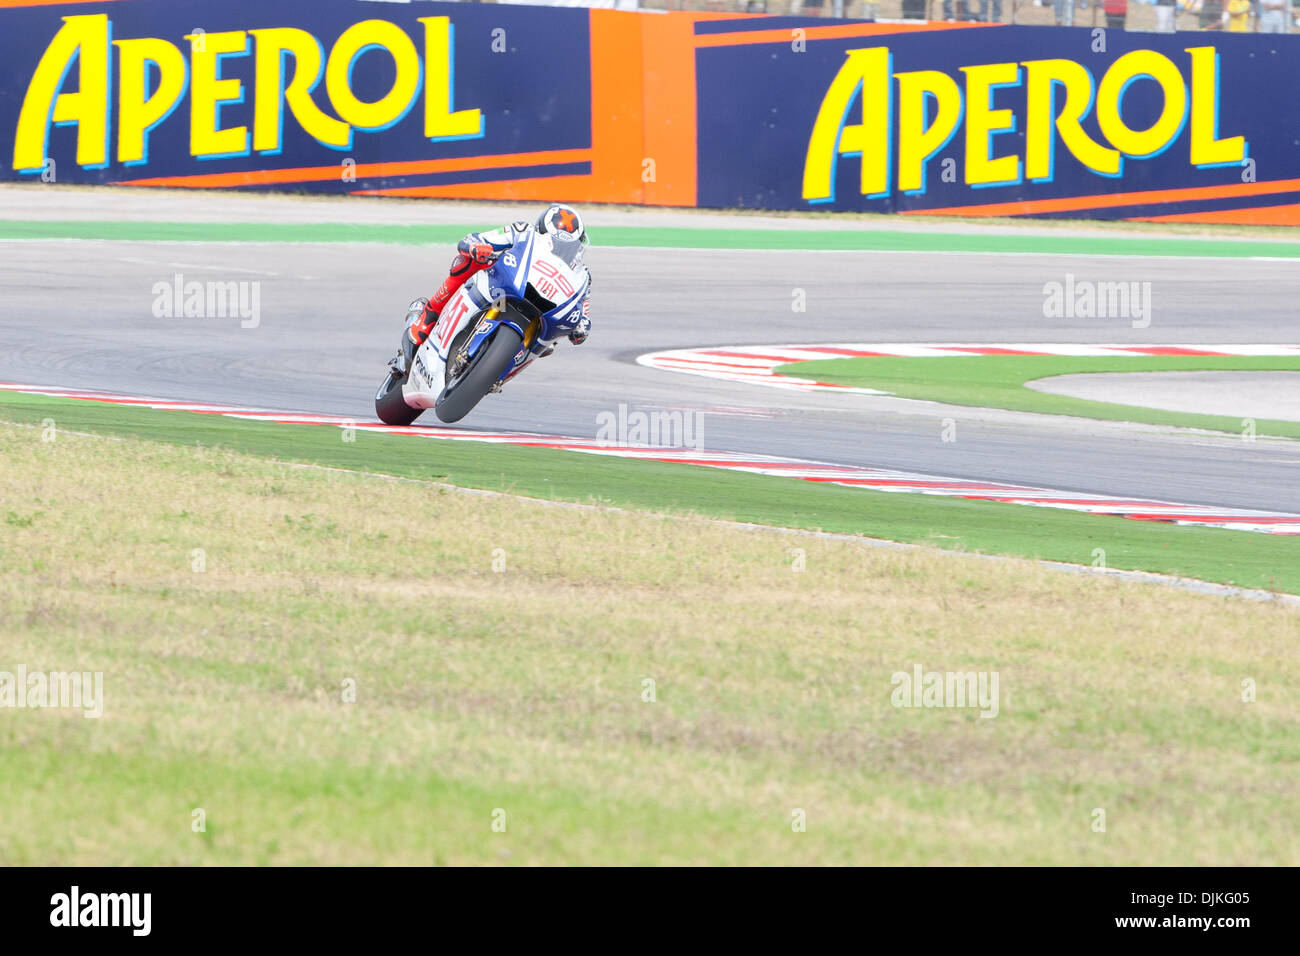 Sep. 05, 2010 - Misano Adriatico, Italy - FIAT Yamaha rider Jorge Lorenzo (SPA #99) defend his second place of the San Marino GP (Credit Image: © Andrea Ranalli/Southcreek Global/ZUMApress.com) - Stock Image